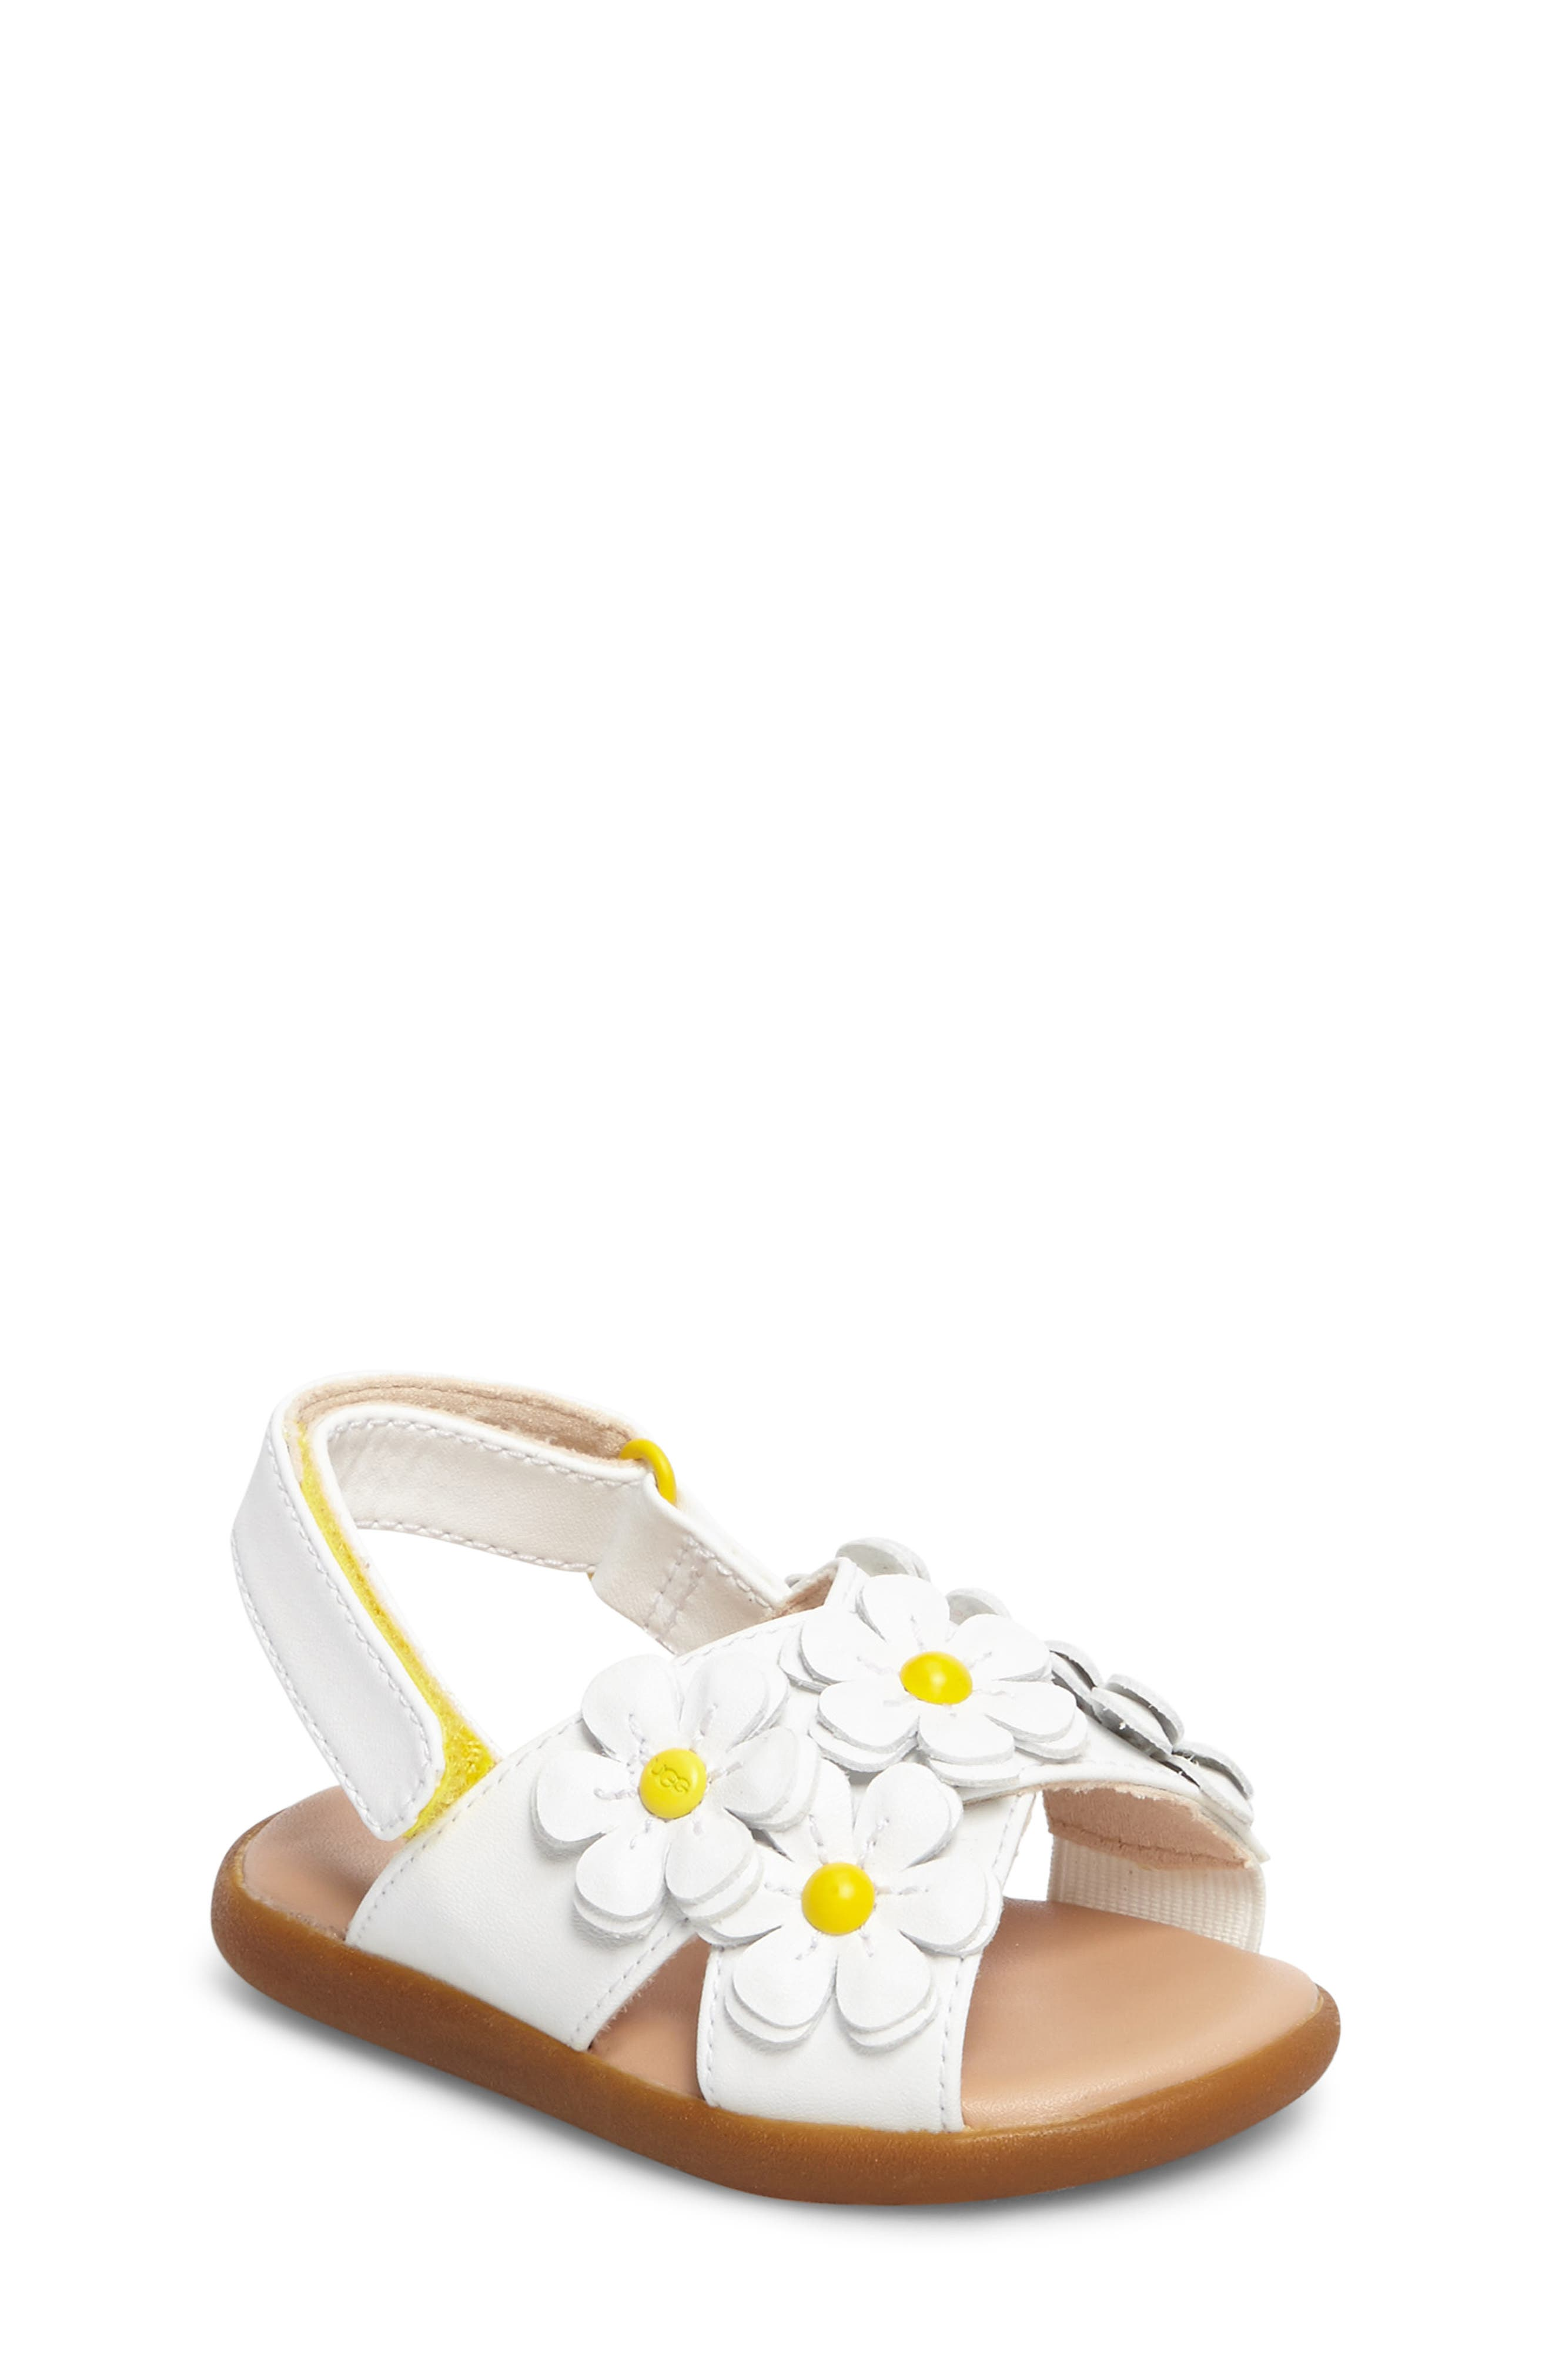 Allairey Sandal,                         Main,                         color, White